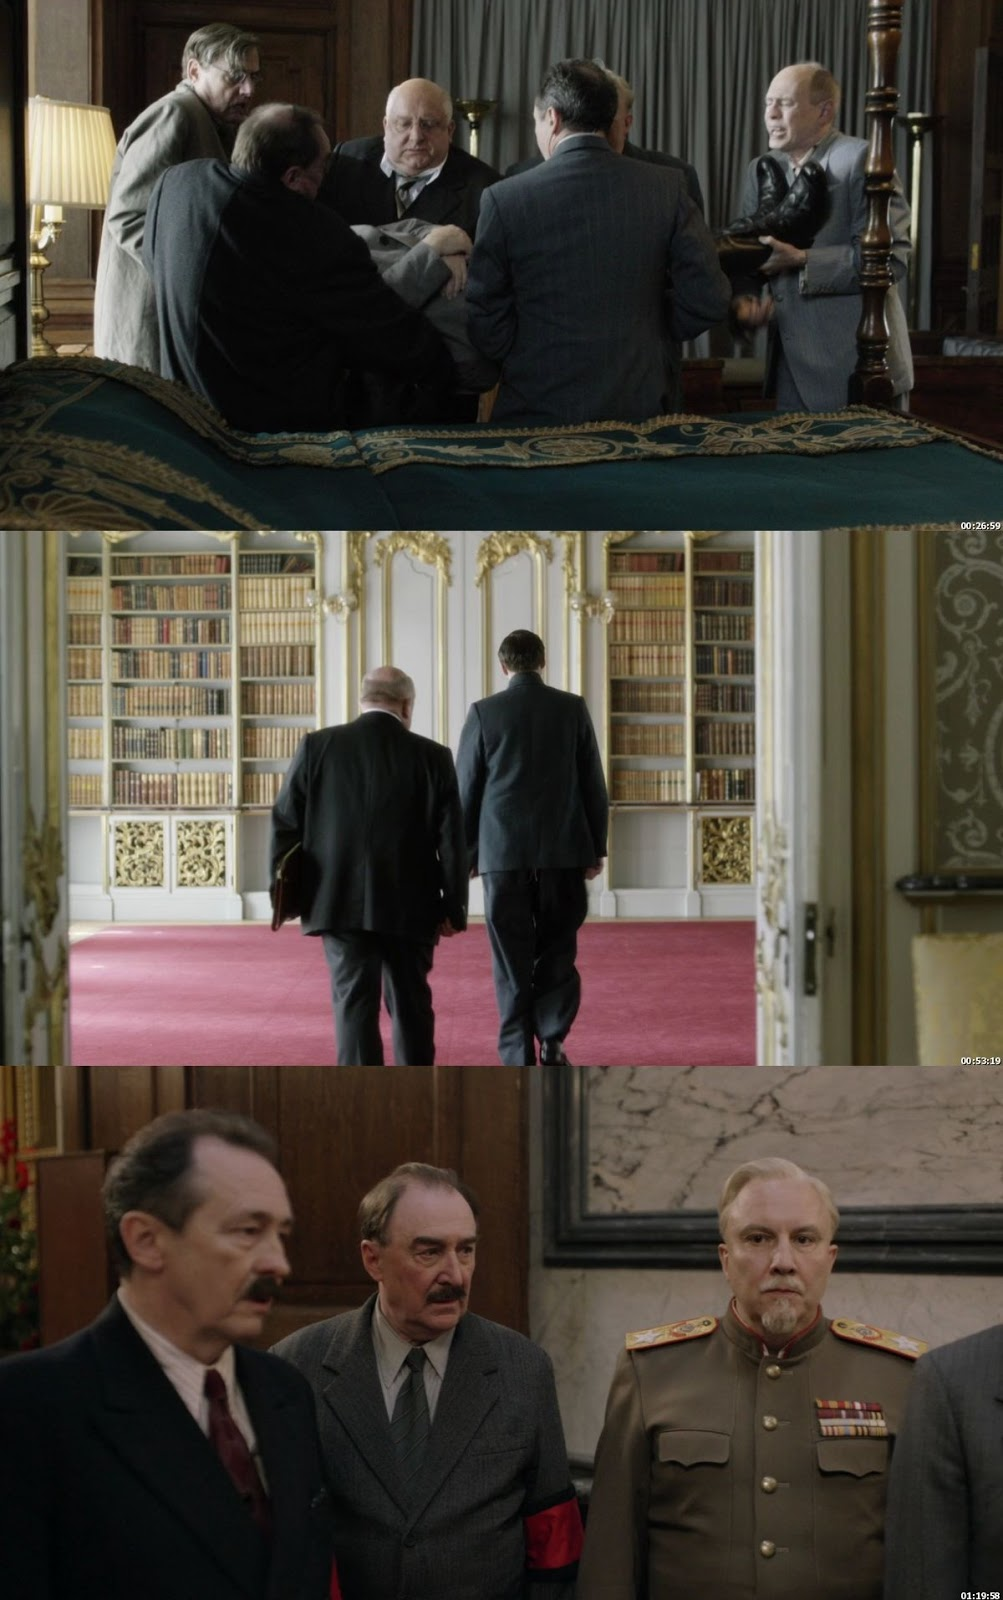 Watch Online Free The Death of Stalin (2017) English Download 480p WEB-DL